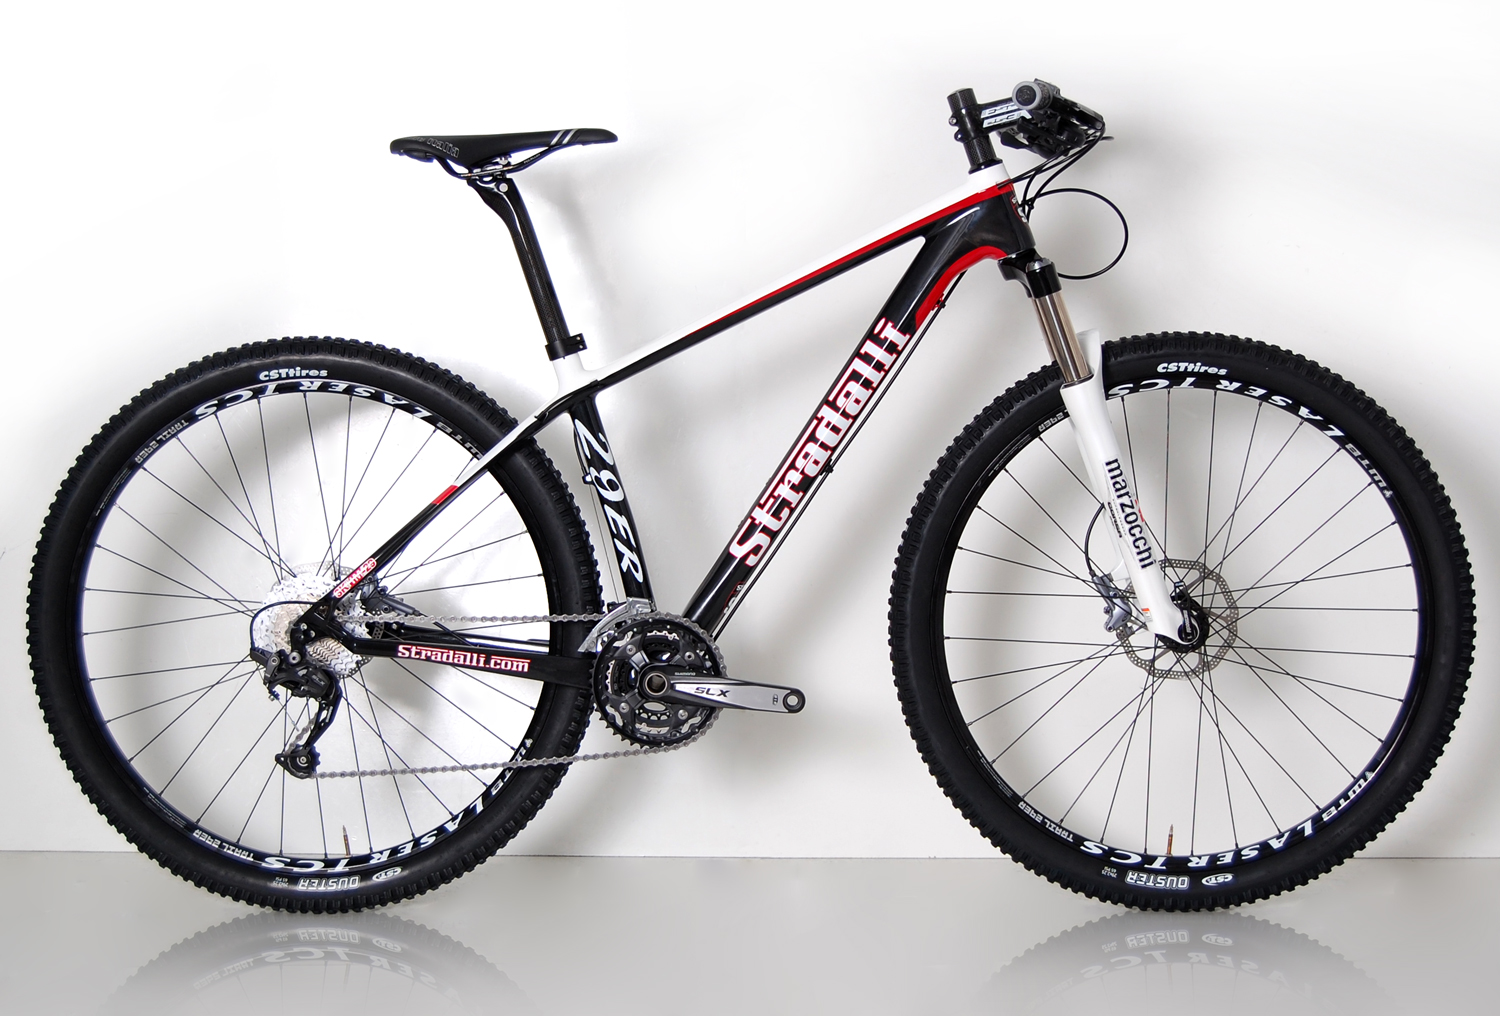 Cuadros 29er Mtb 29er Stradalli Cycle Carbon Mountain Bike 29er Slx 2013